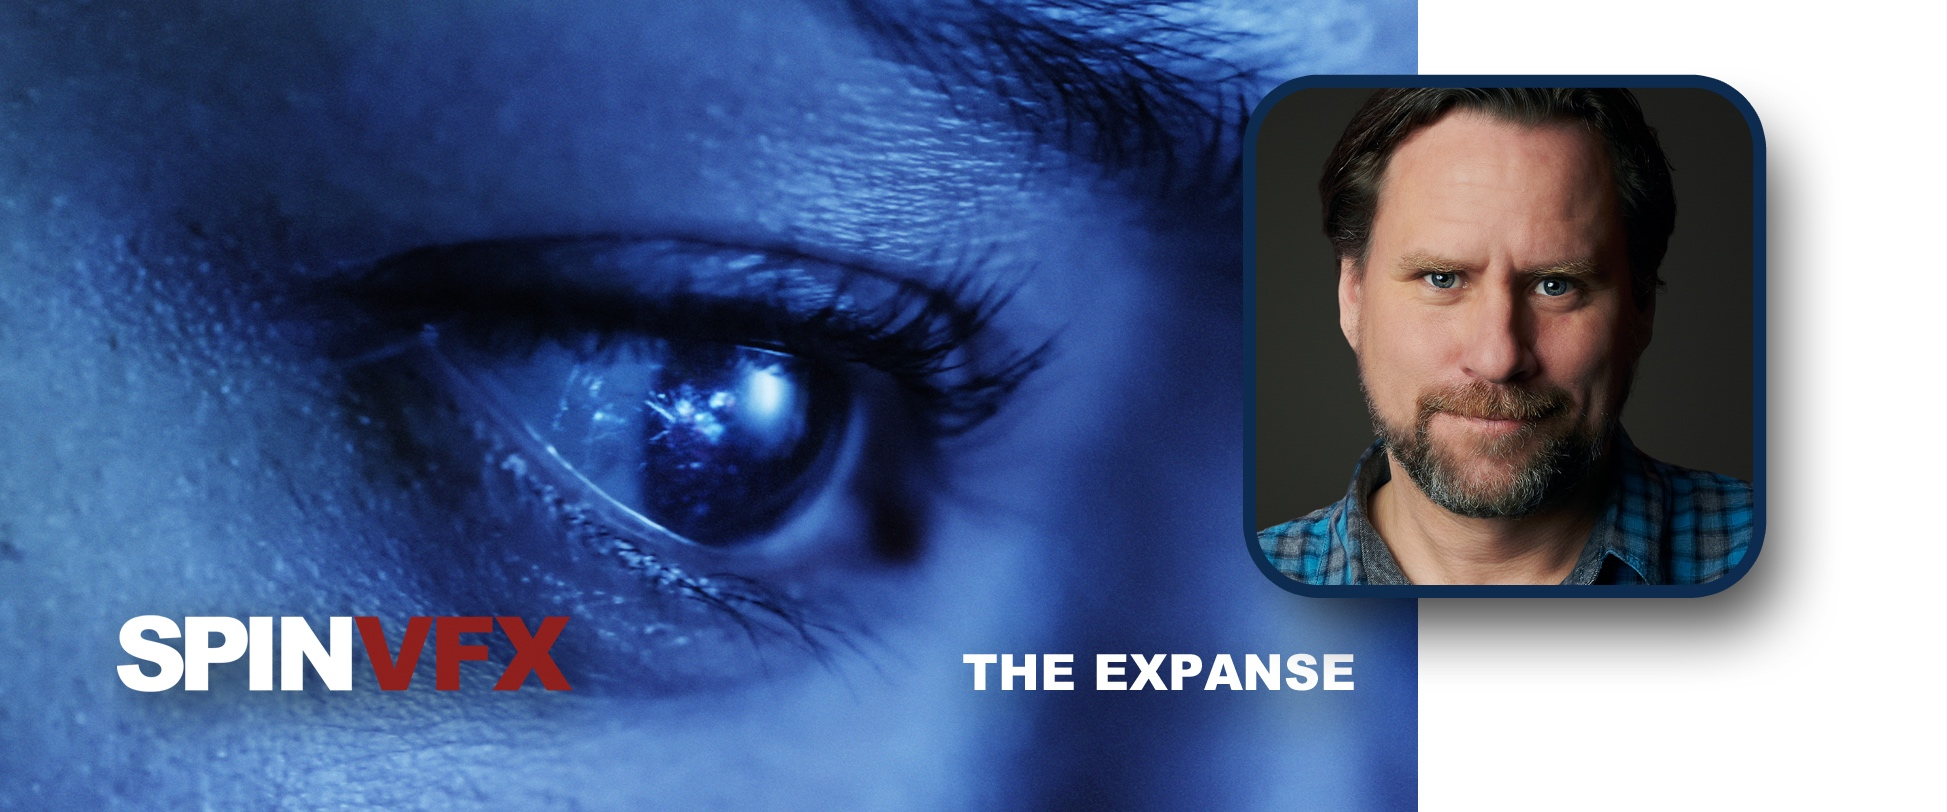 Kyle Menzies - The Expanse